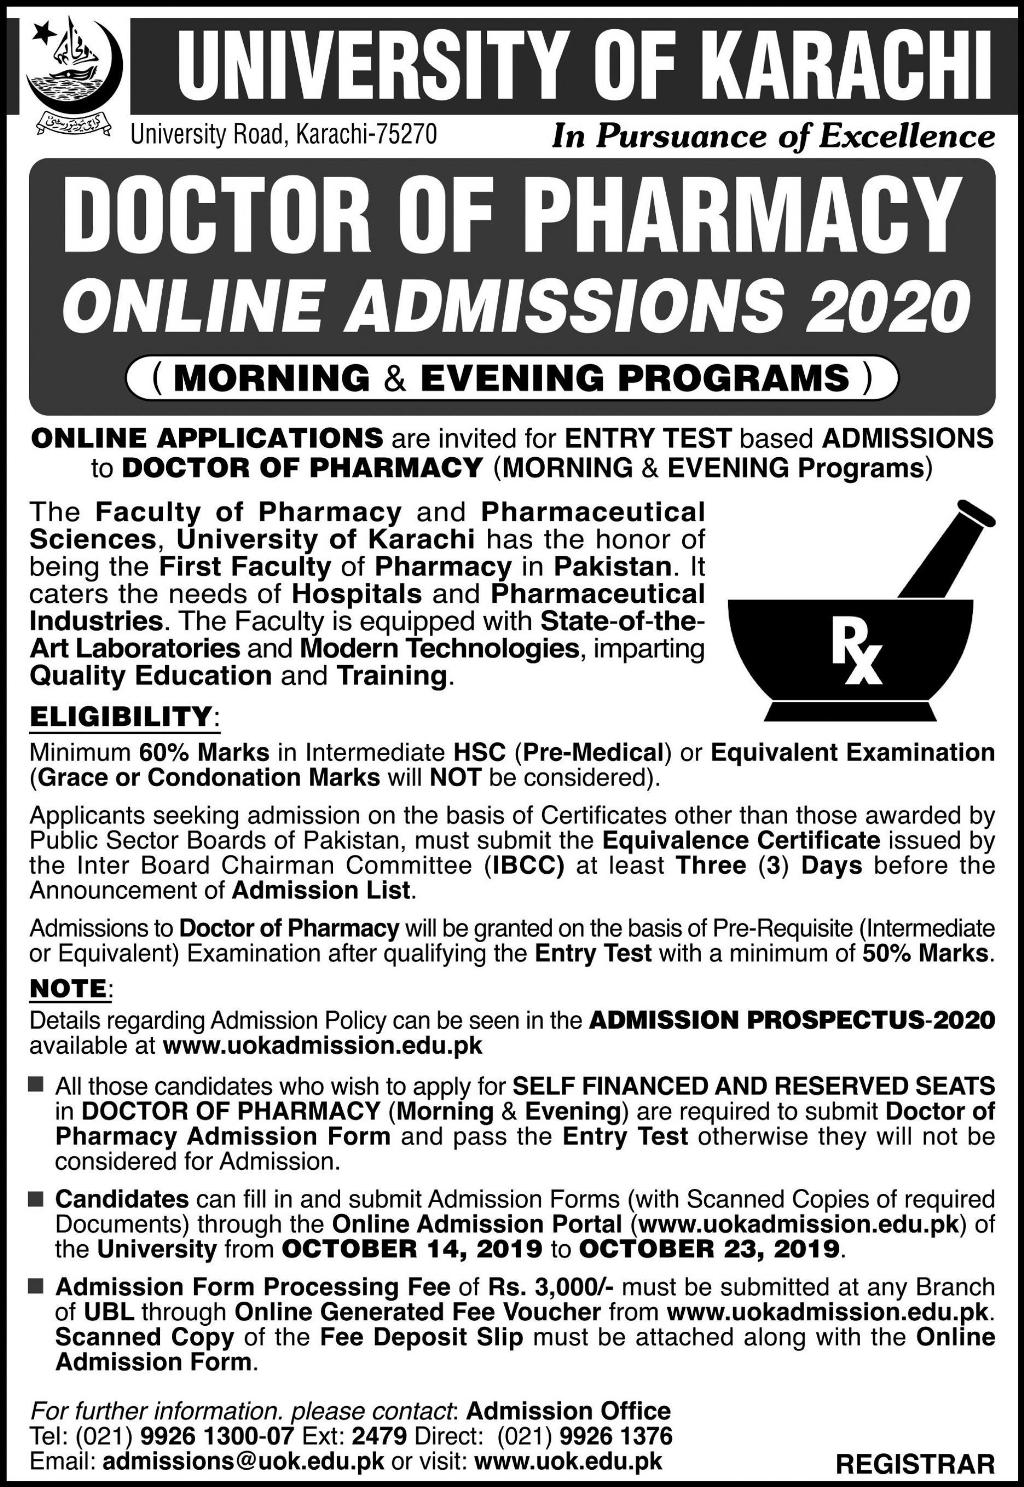 UNIVERSITY OF KARACHI DOCTOR OF PHARMACY ONLINE ADMISSIONS 2020